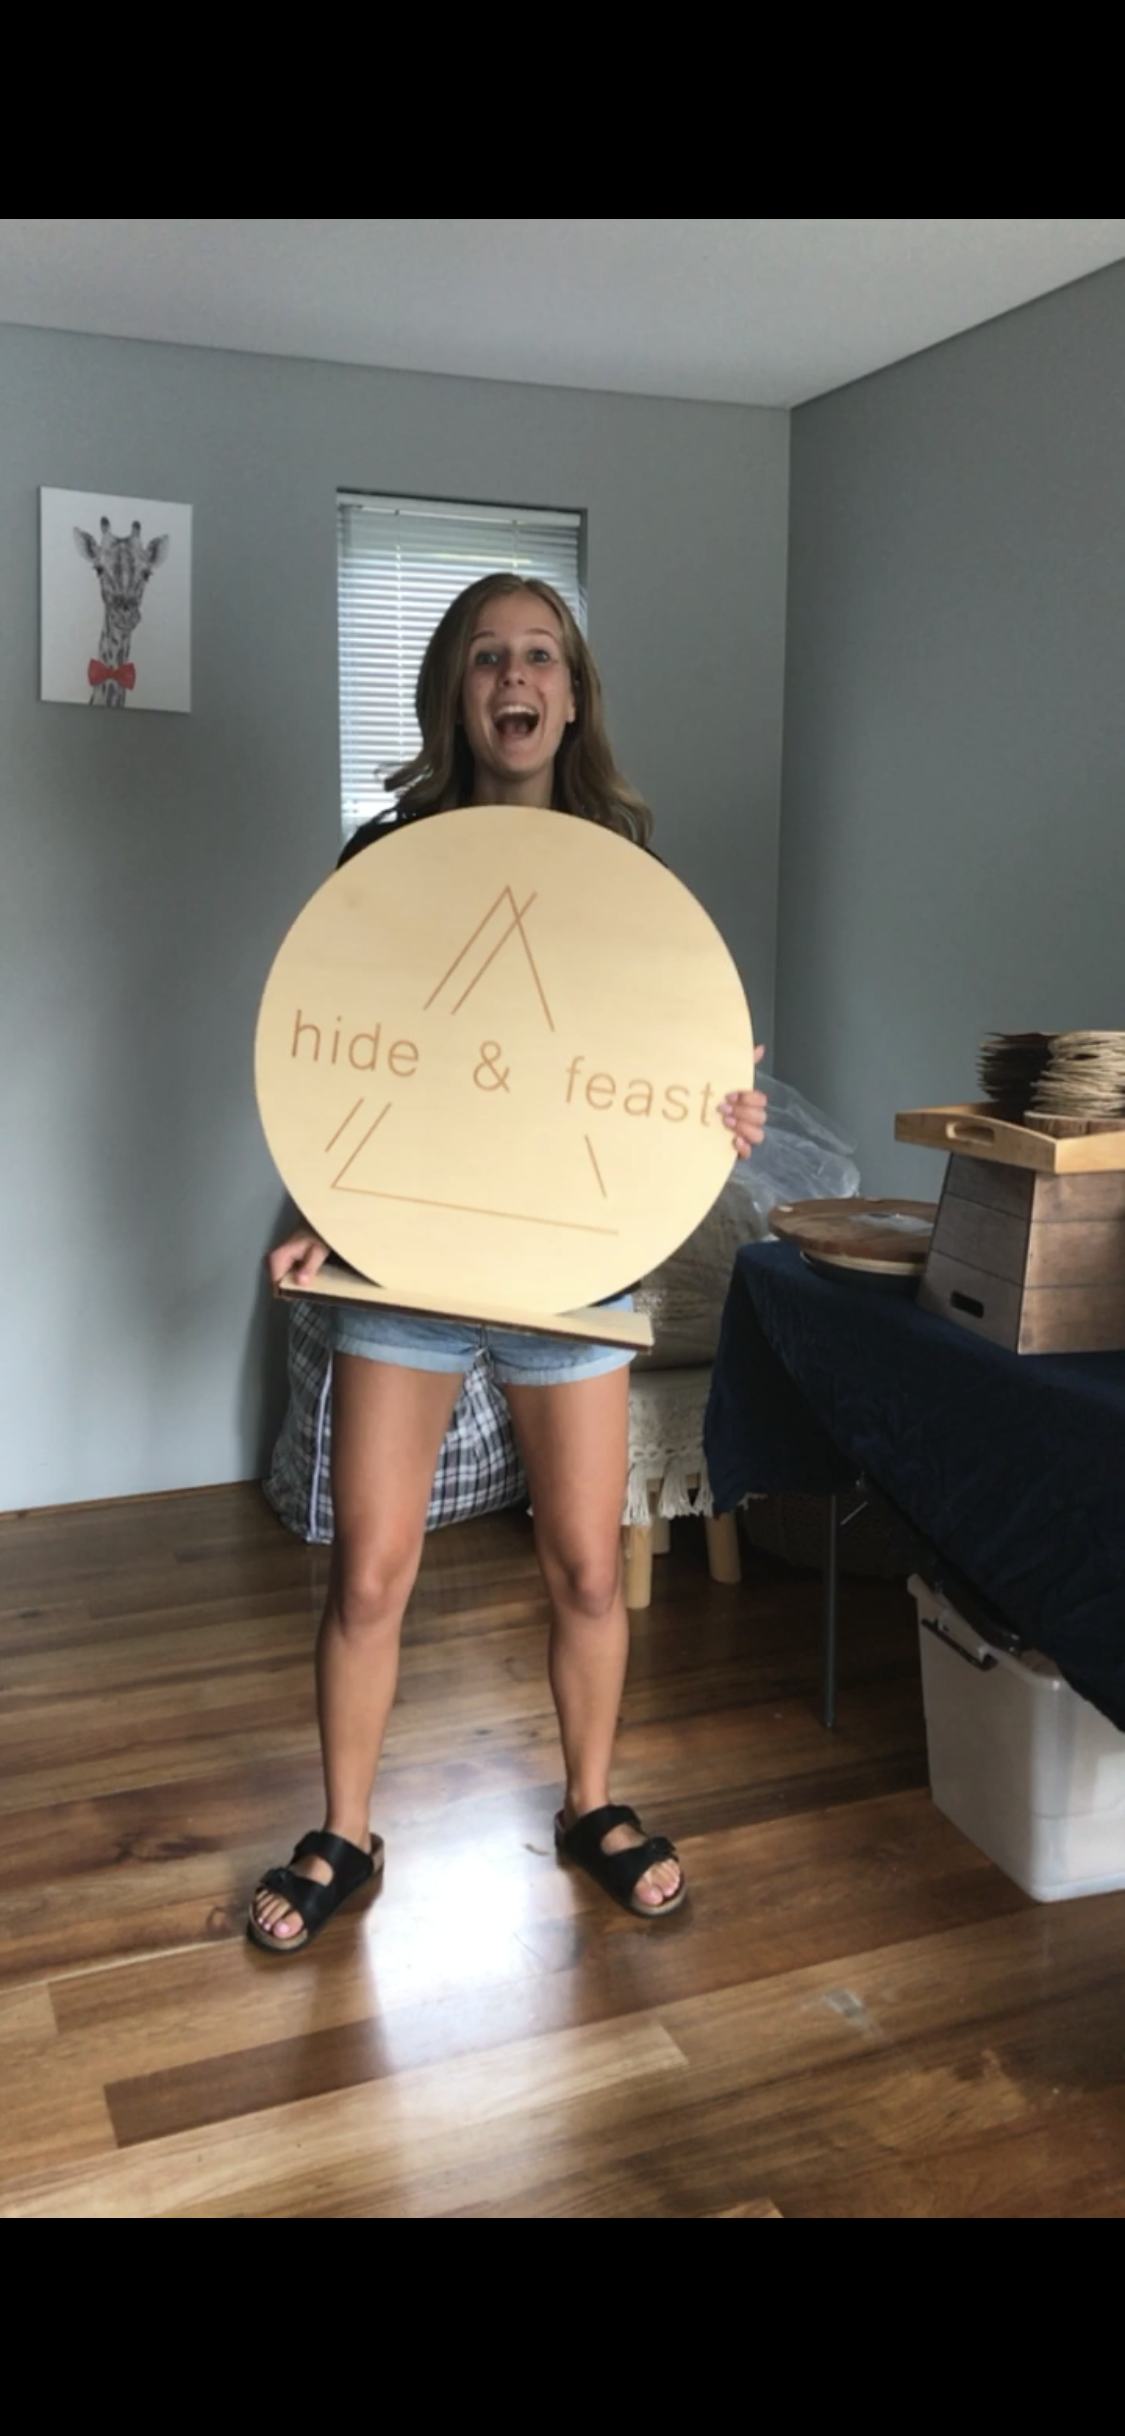 Tess holding her branded signage for Hide and Feast